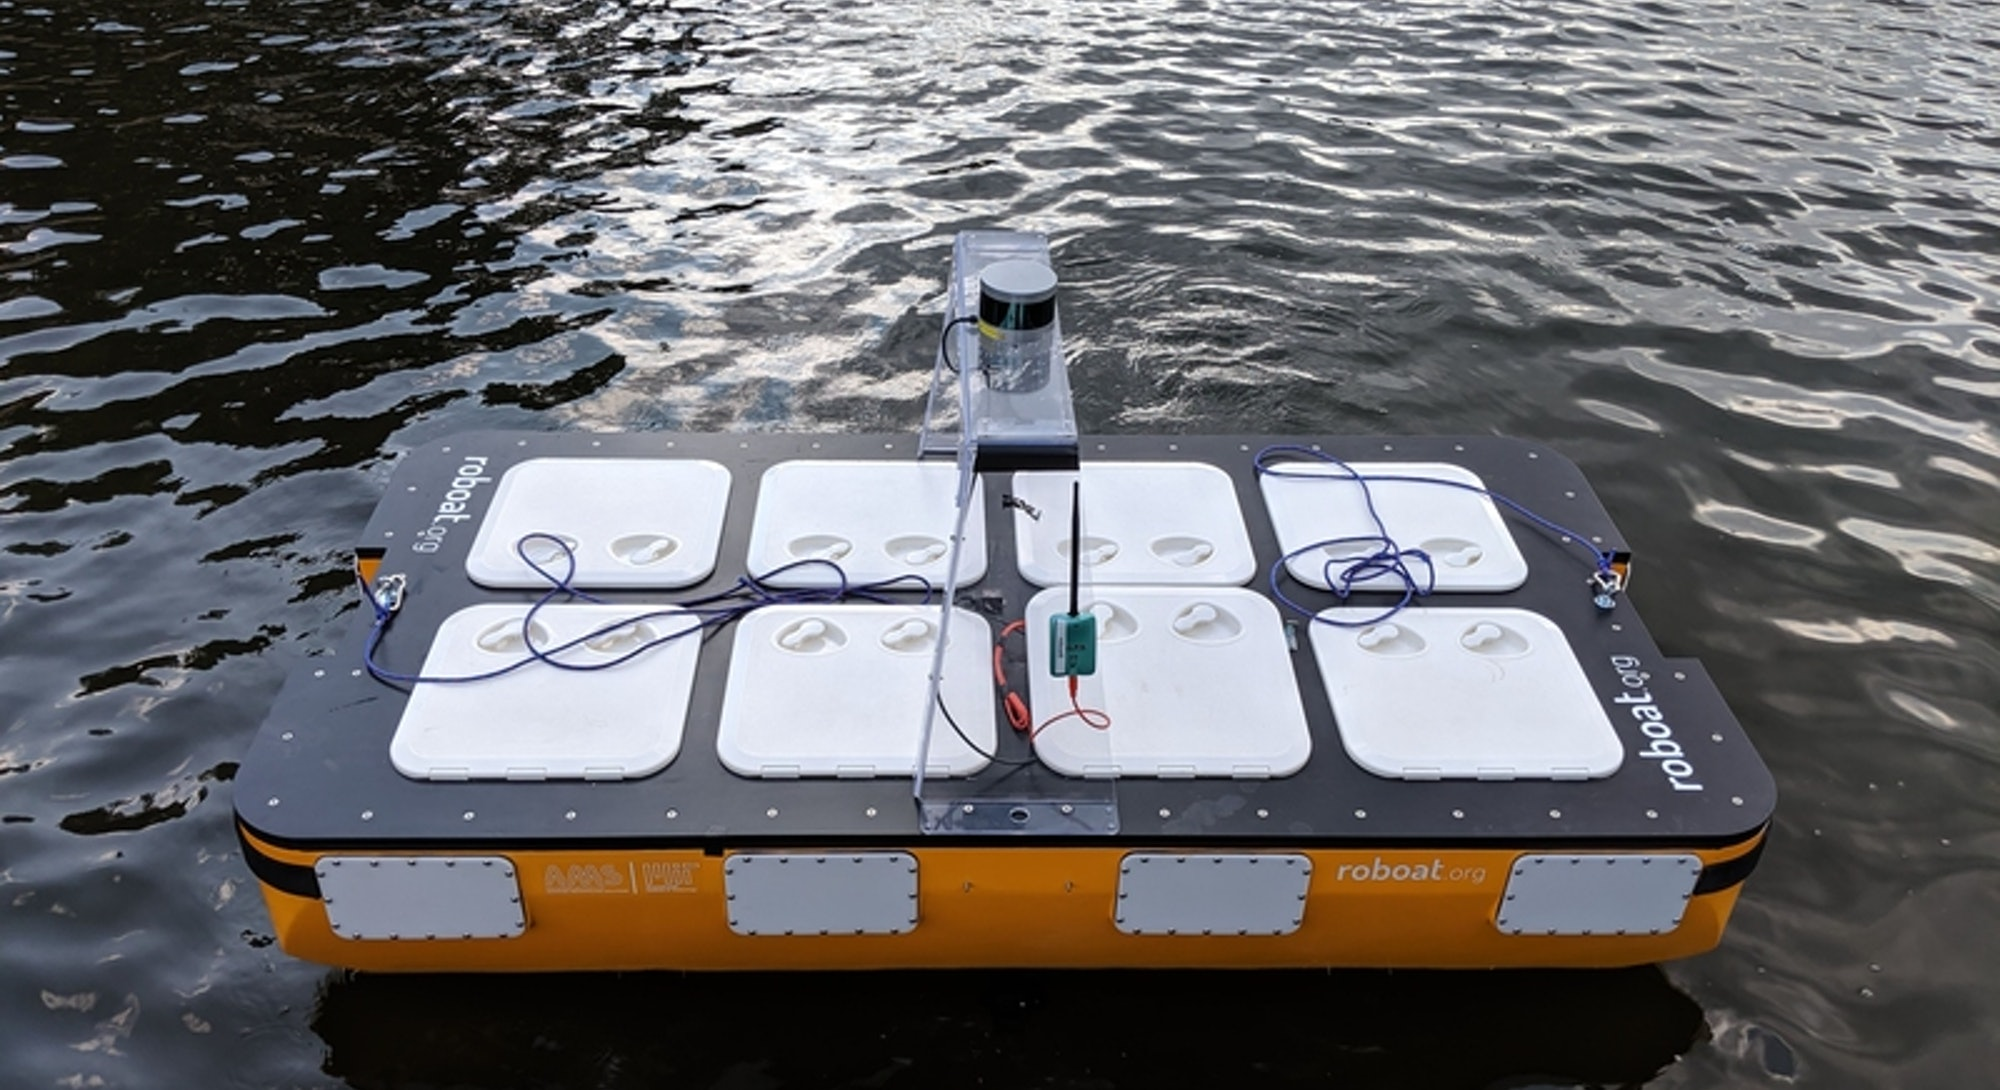 The autonomous Roboat II made by MIT CSAIL and researchers in Amsterdam